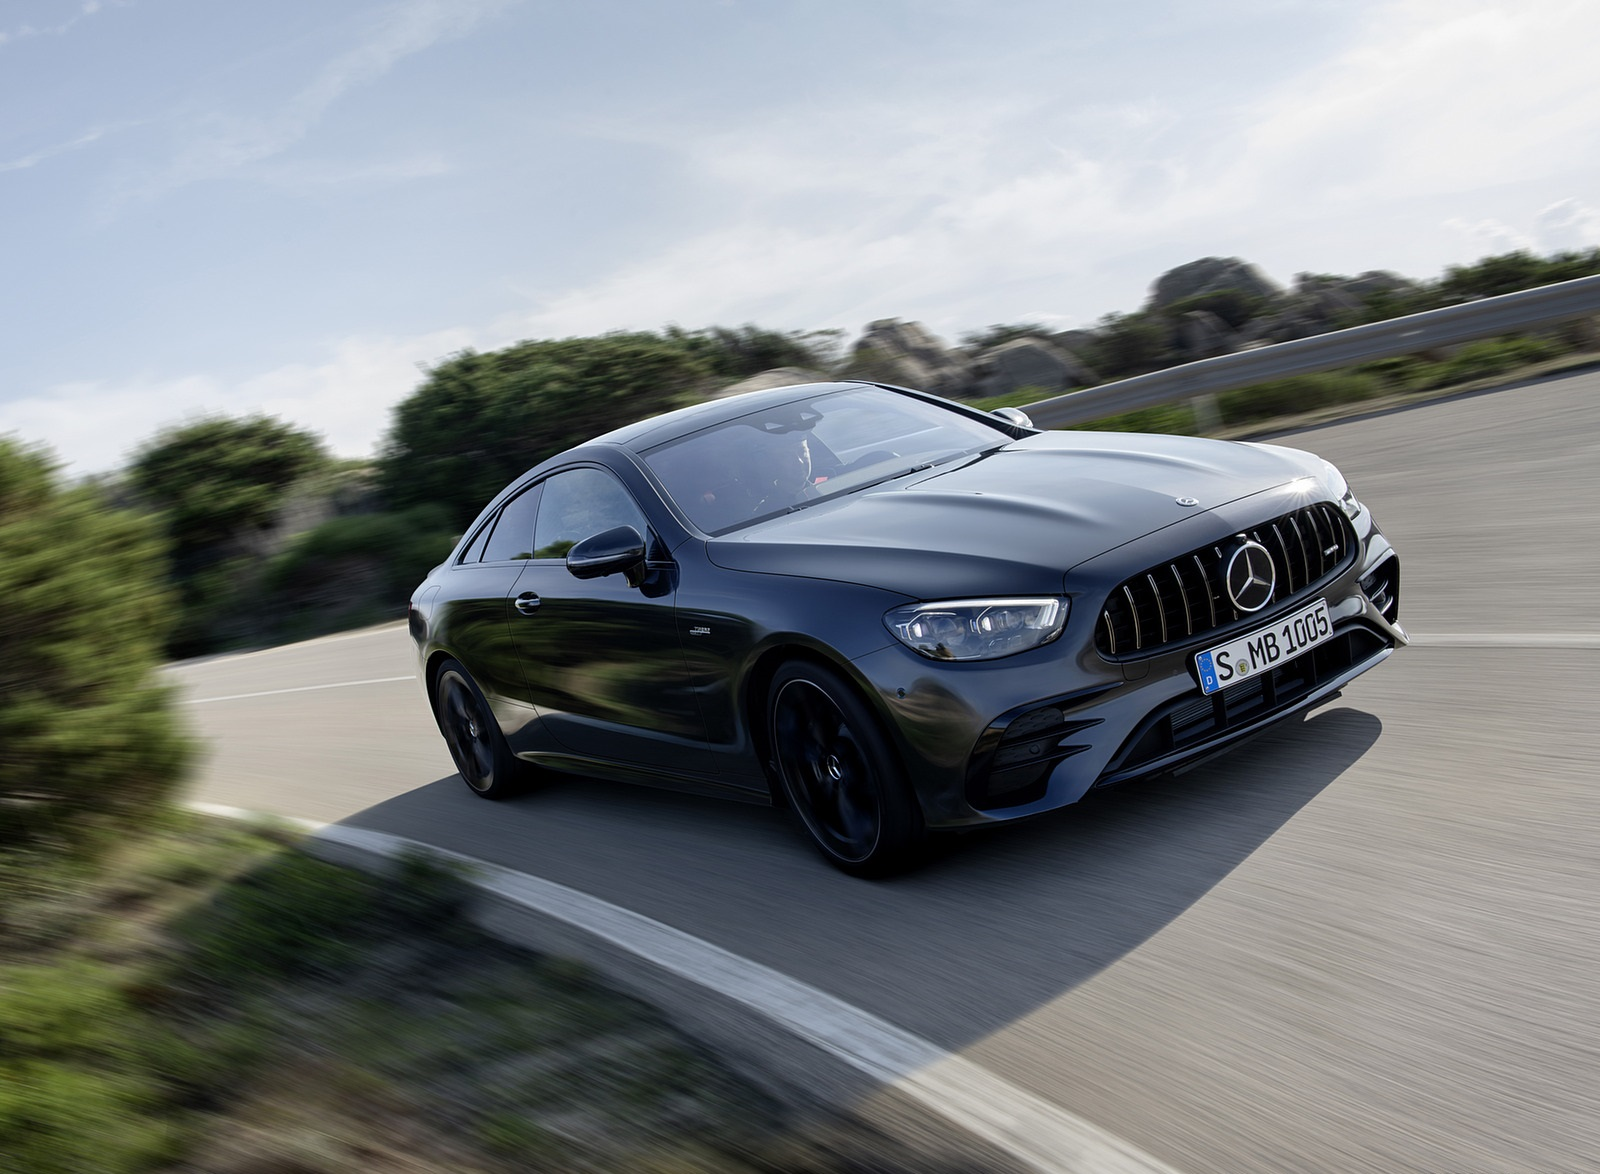 2021 Mercedes-AMG E 53 Coupe (Color: Graphite Grey Metallic) Front Three-Quarter Wallpapers (2)